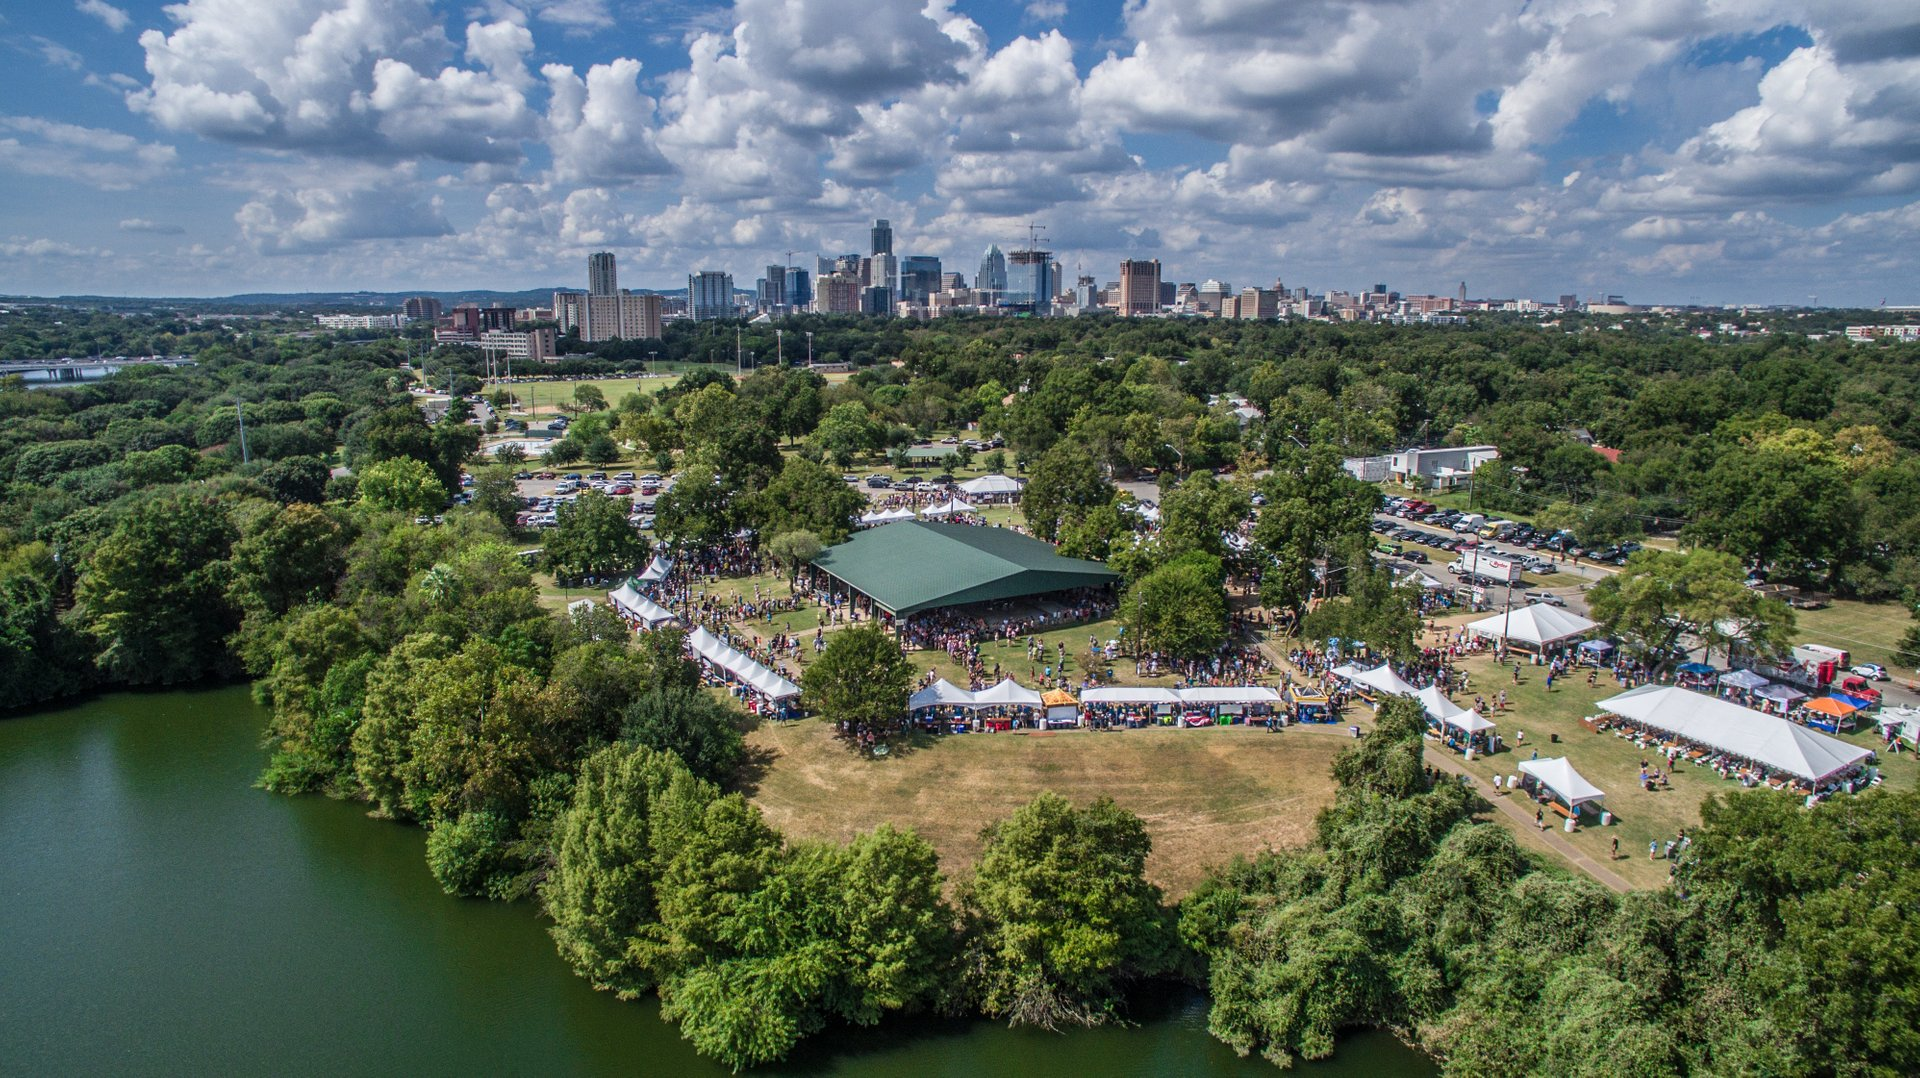 Texas Craft Brewers Festival in Texas - Best Time